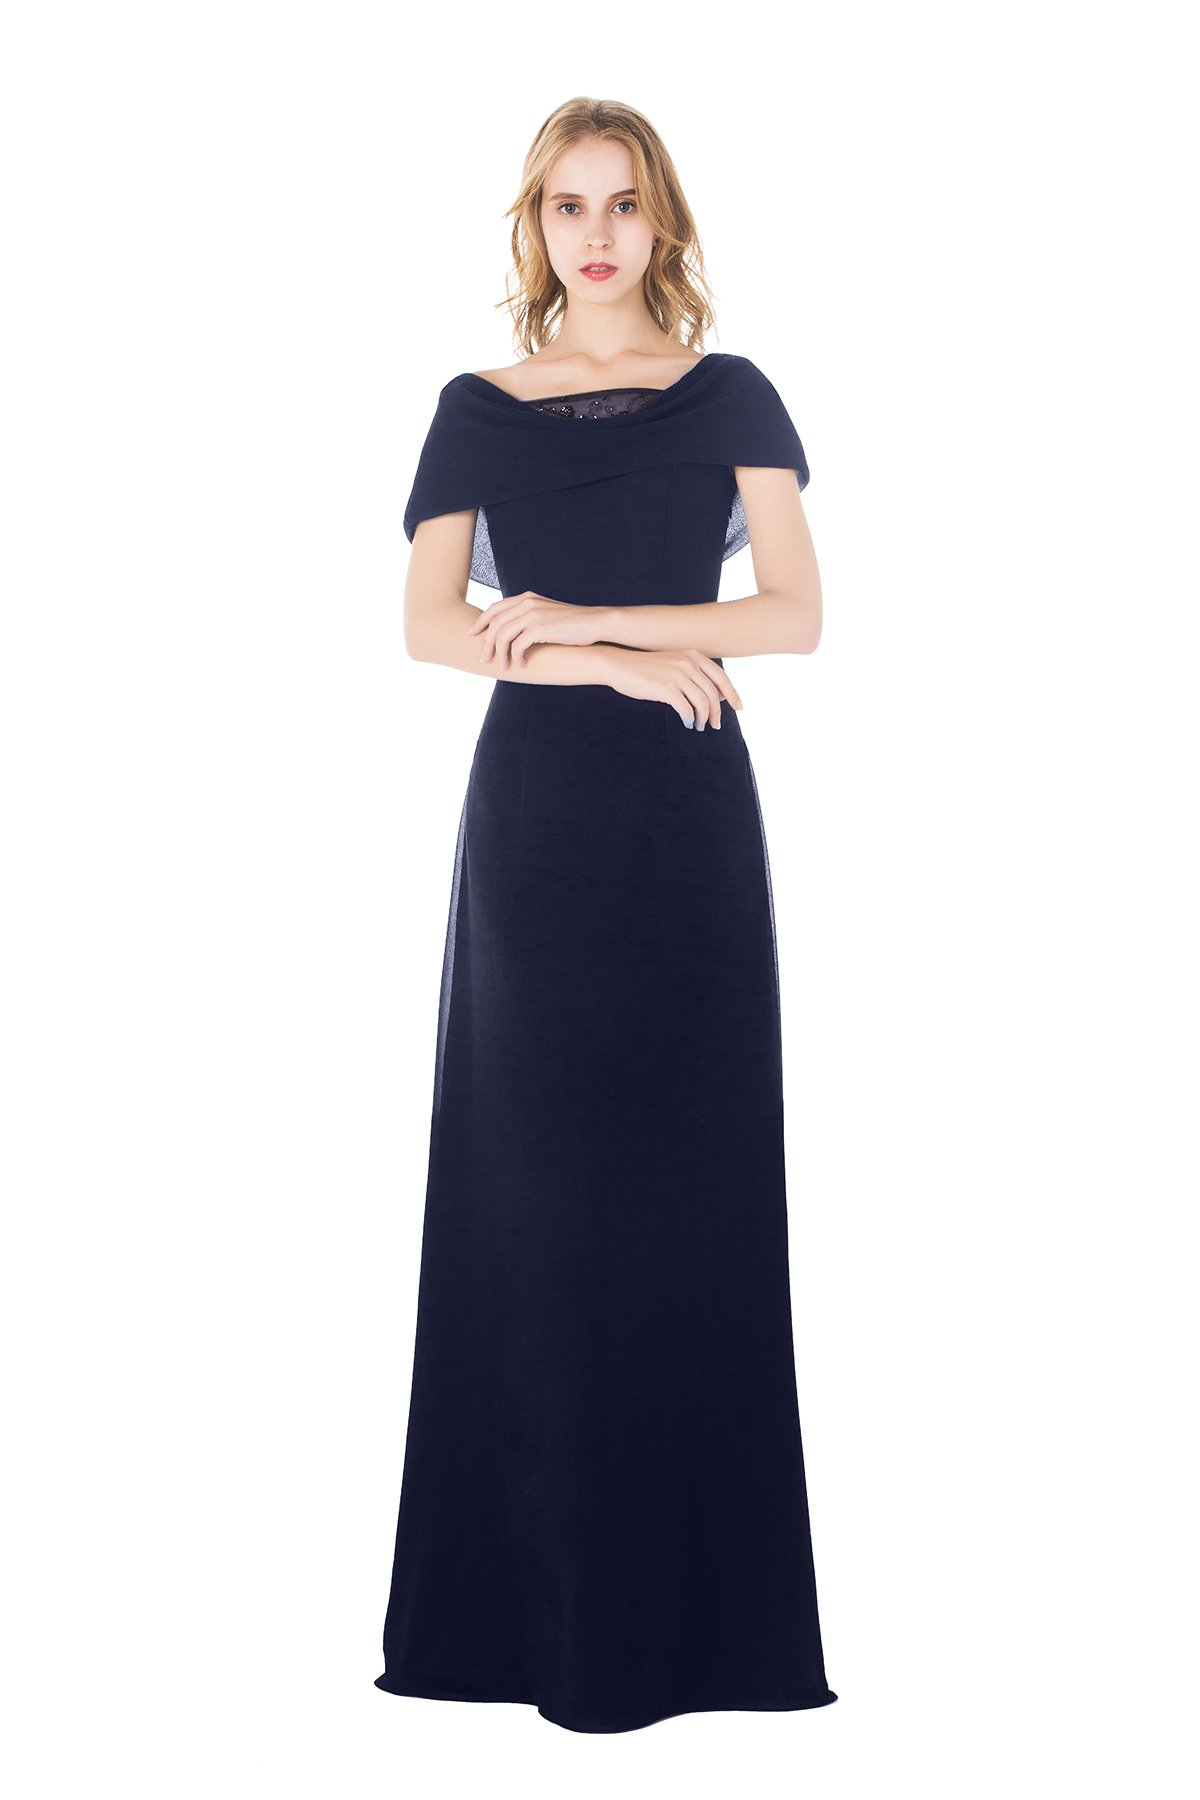 AISLE STYLE Elegant Shoulder Wrap Long A Line Chiffon Evening Dress